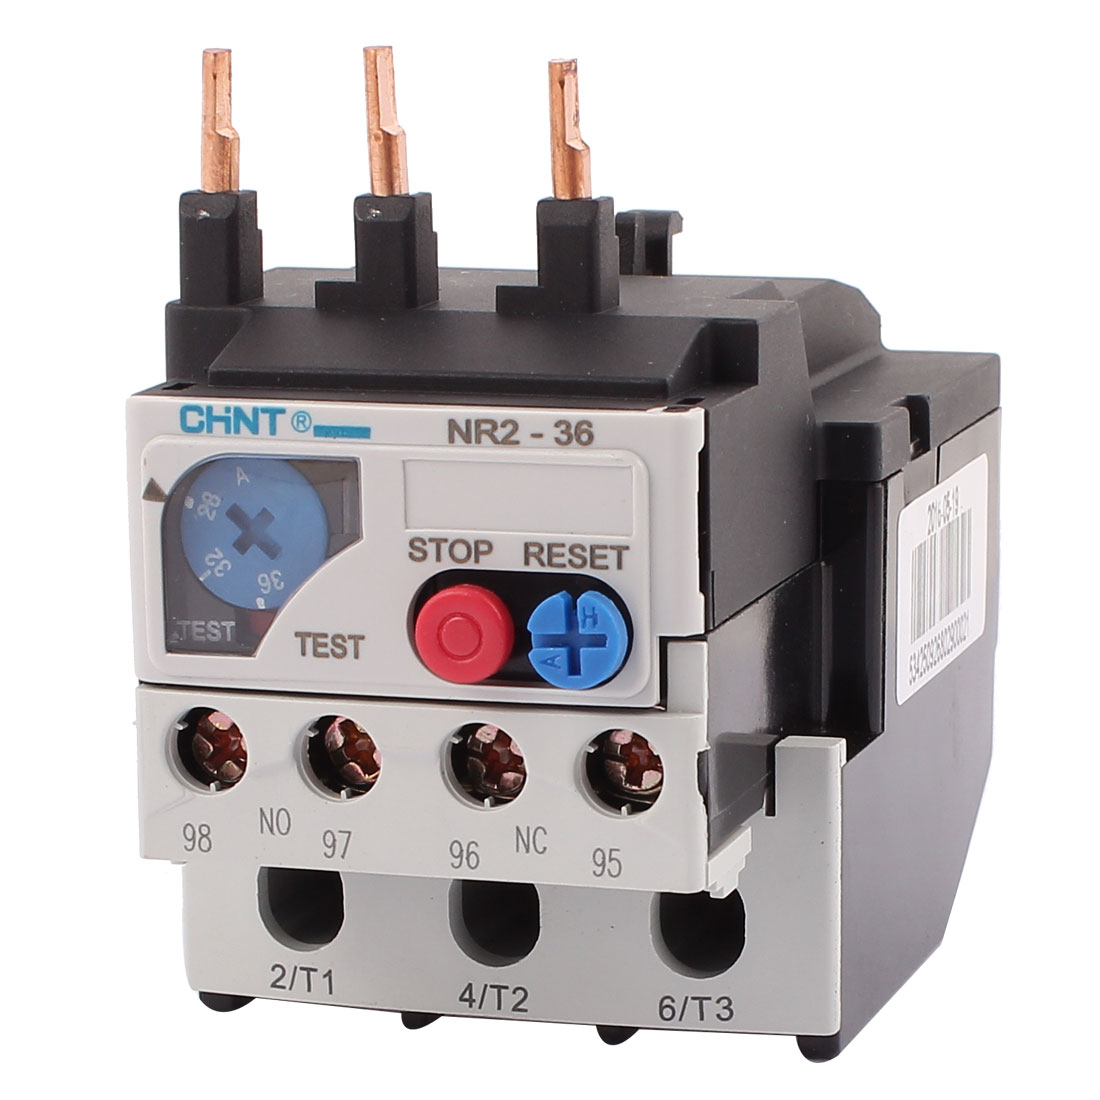 NR2-36 28-36A 3 Pole 1 NO 1 NC Motor Protector Electric Thermal Overload Relay